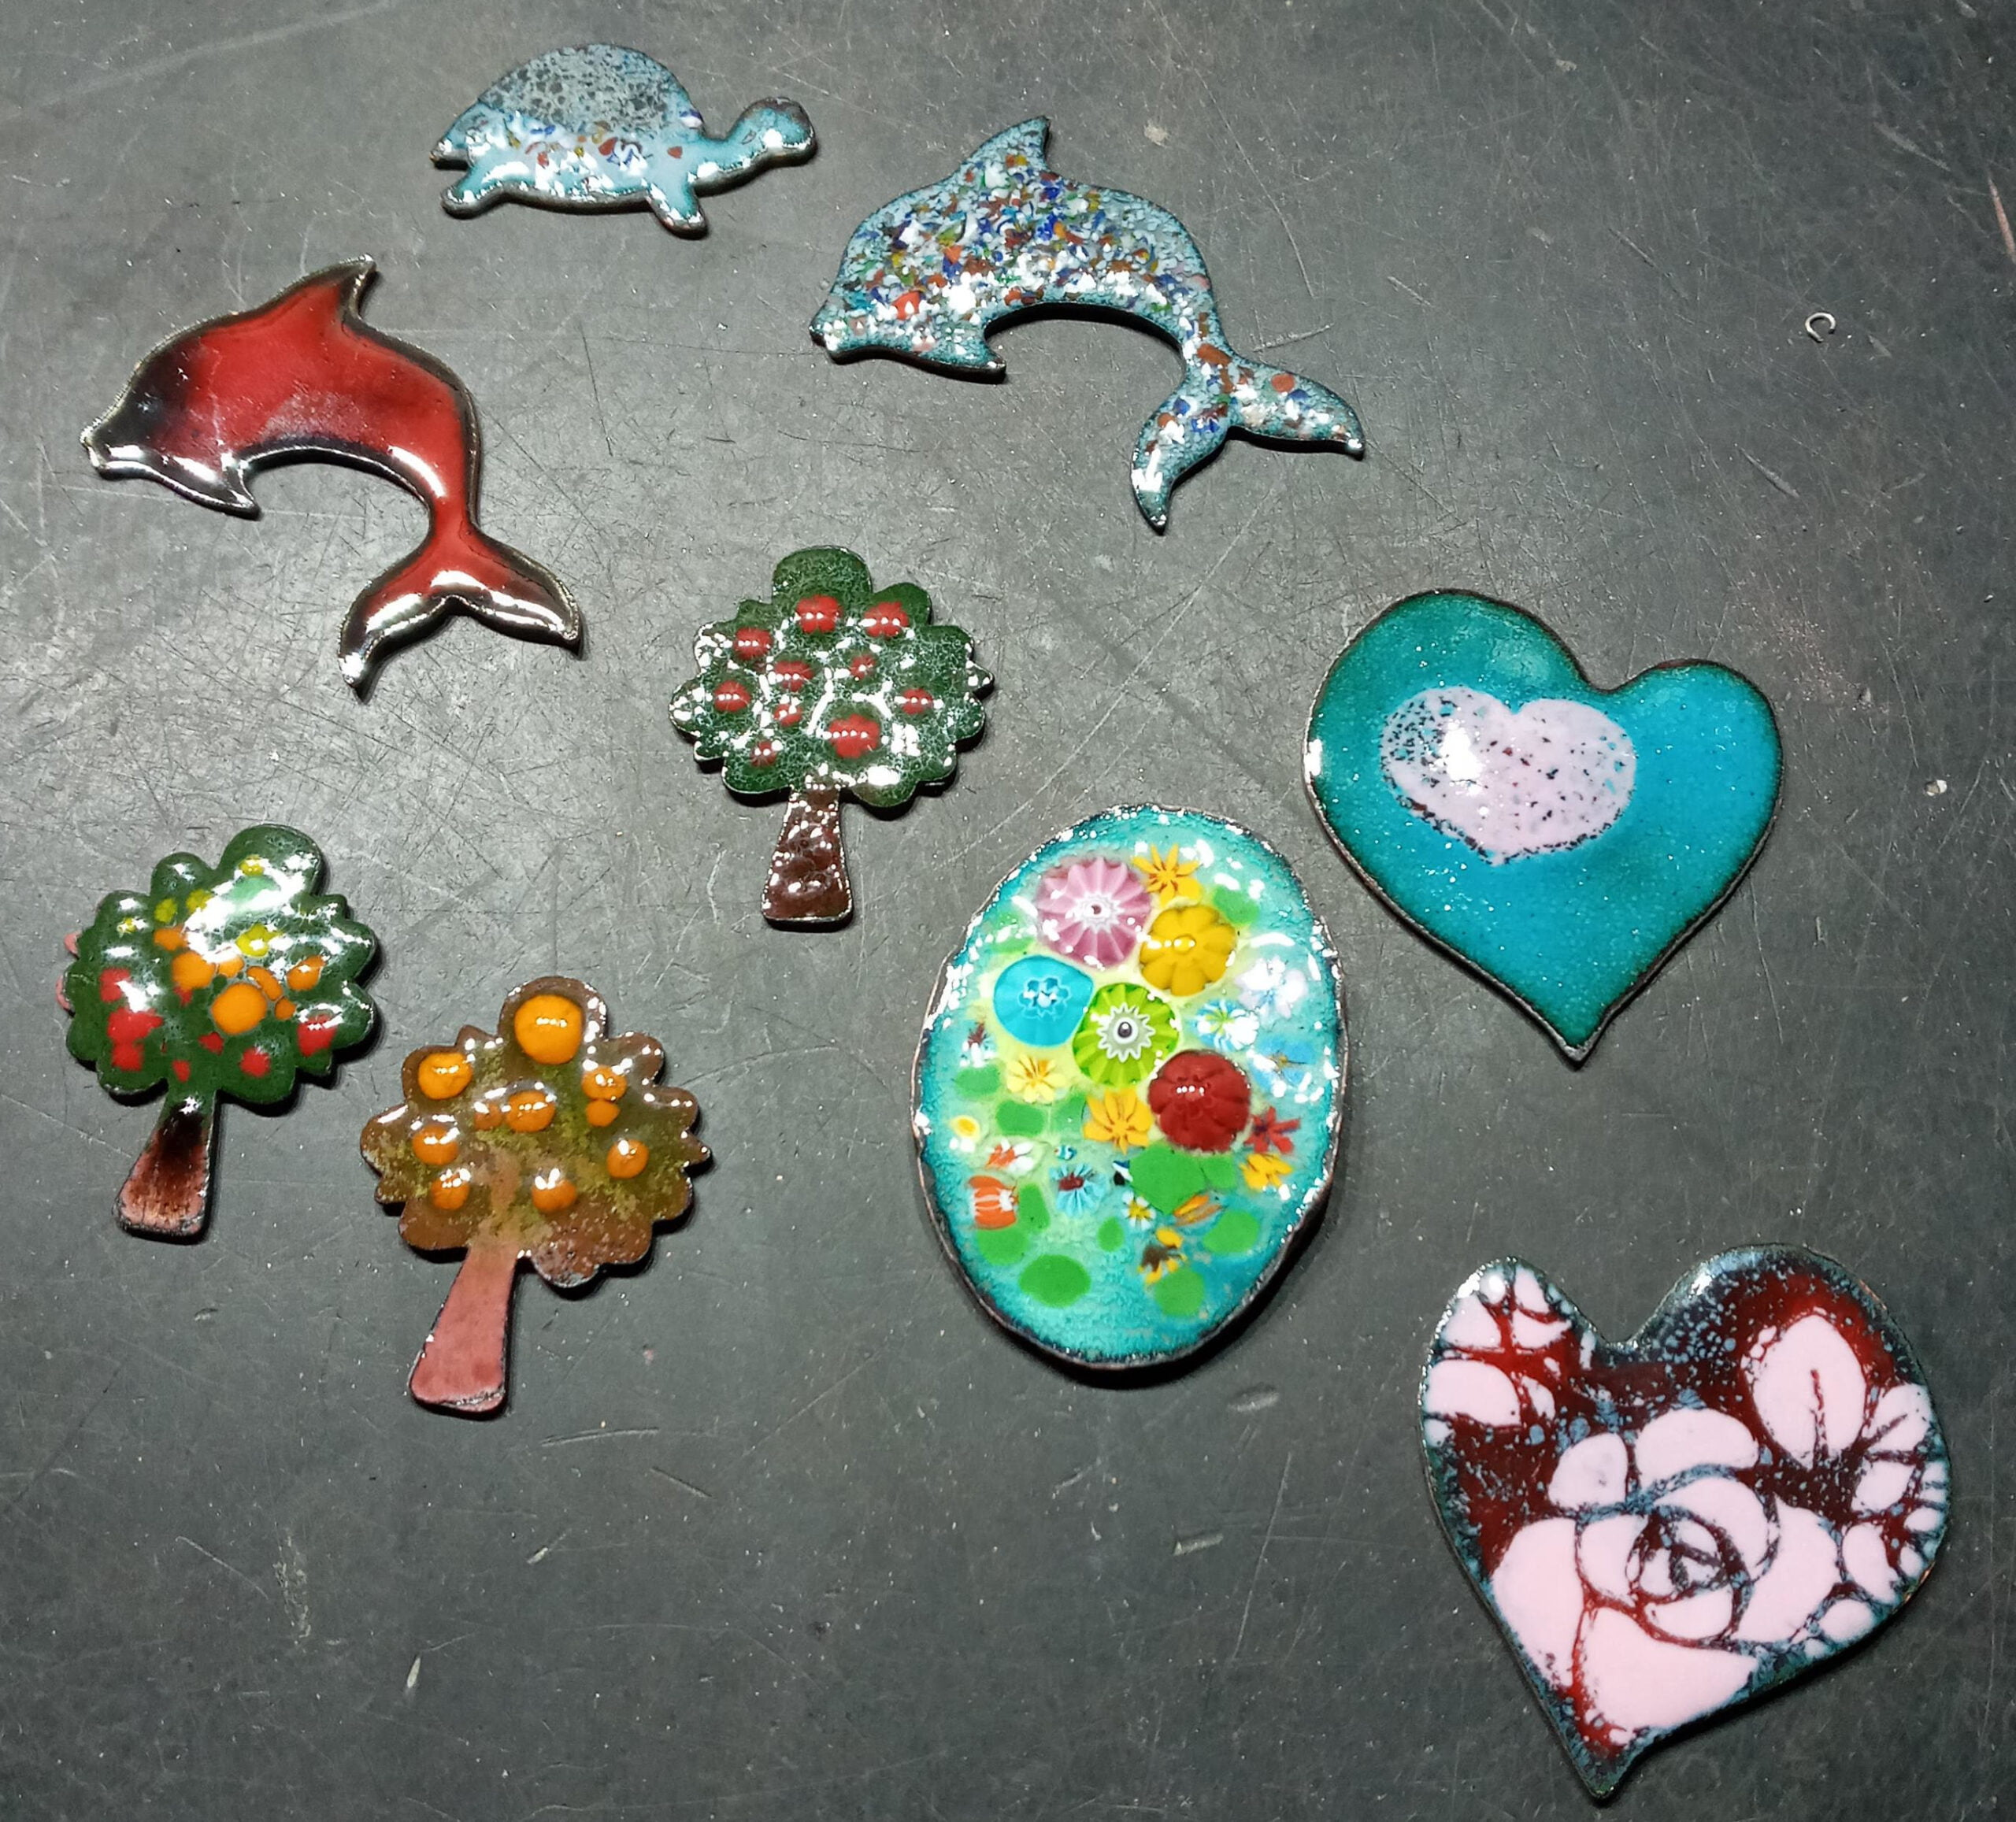 Making Brooches